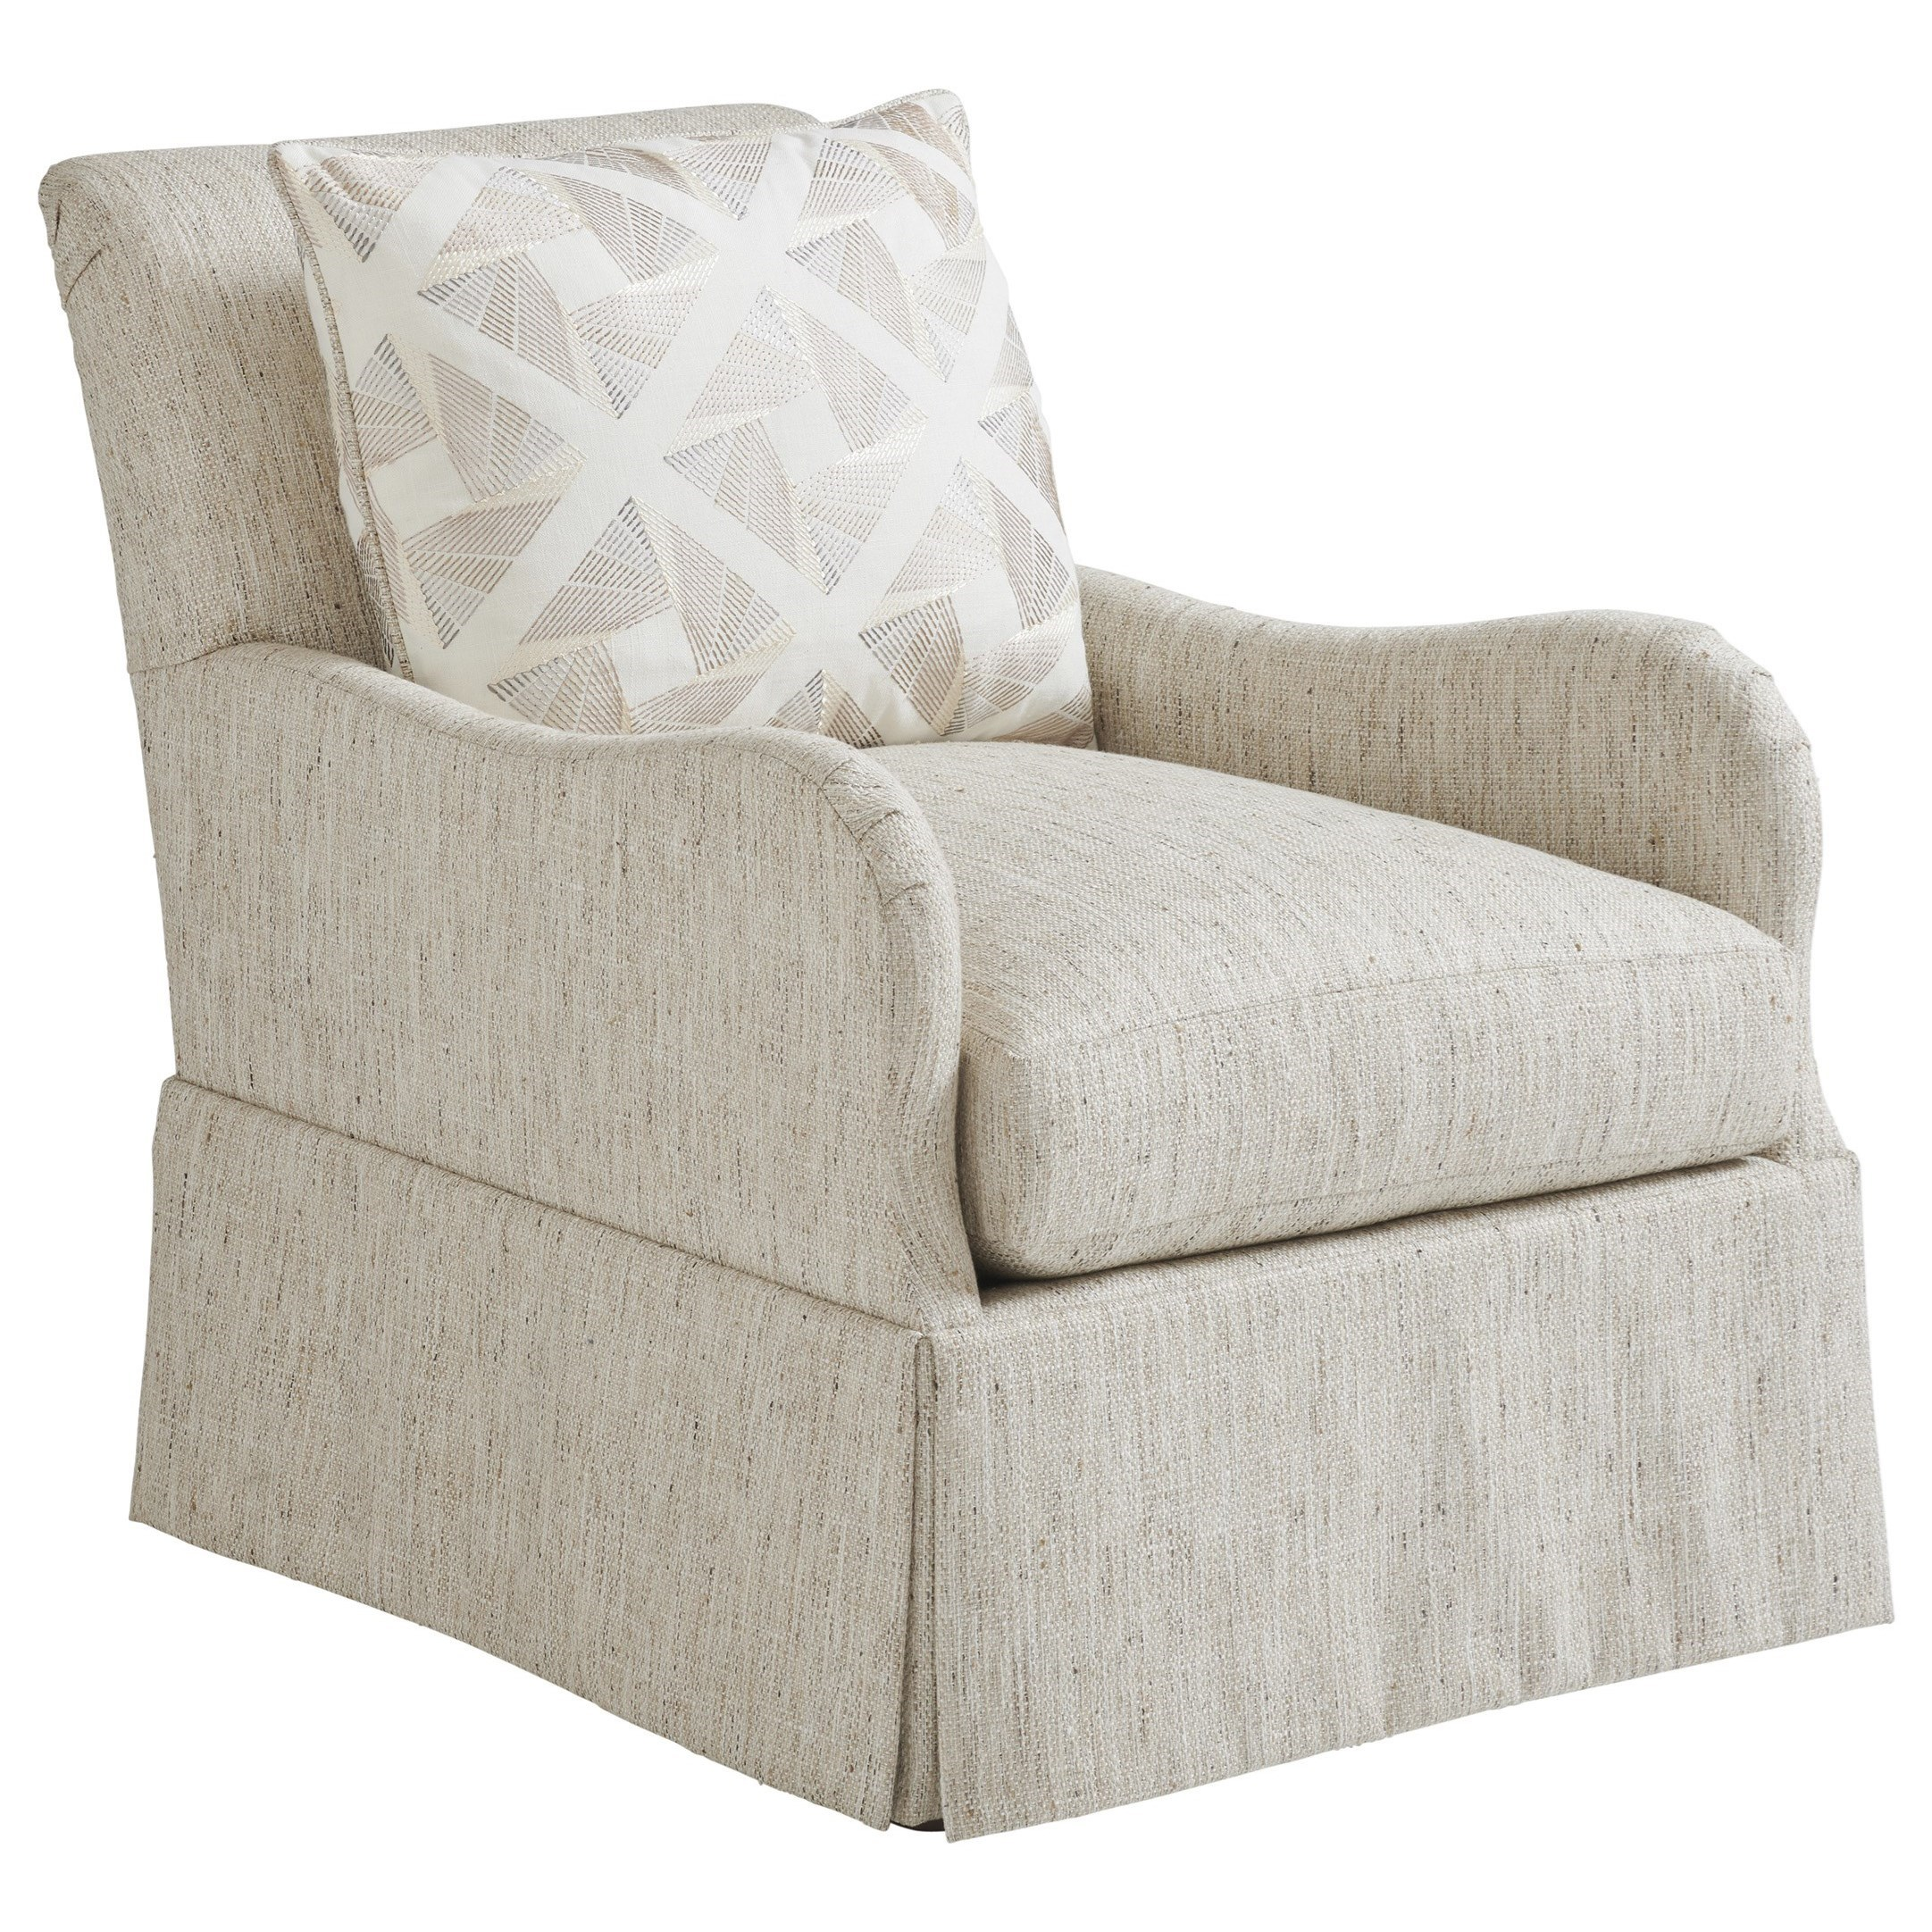 Ocean Breeze Palm Frond Chair by Tommy Bahama Home at Baer's Furniture